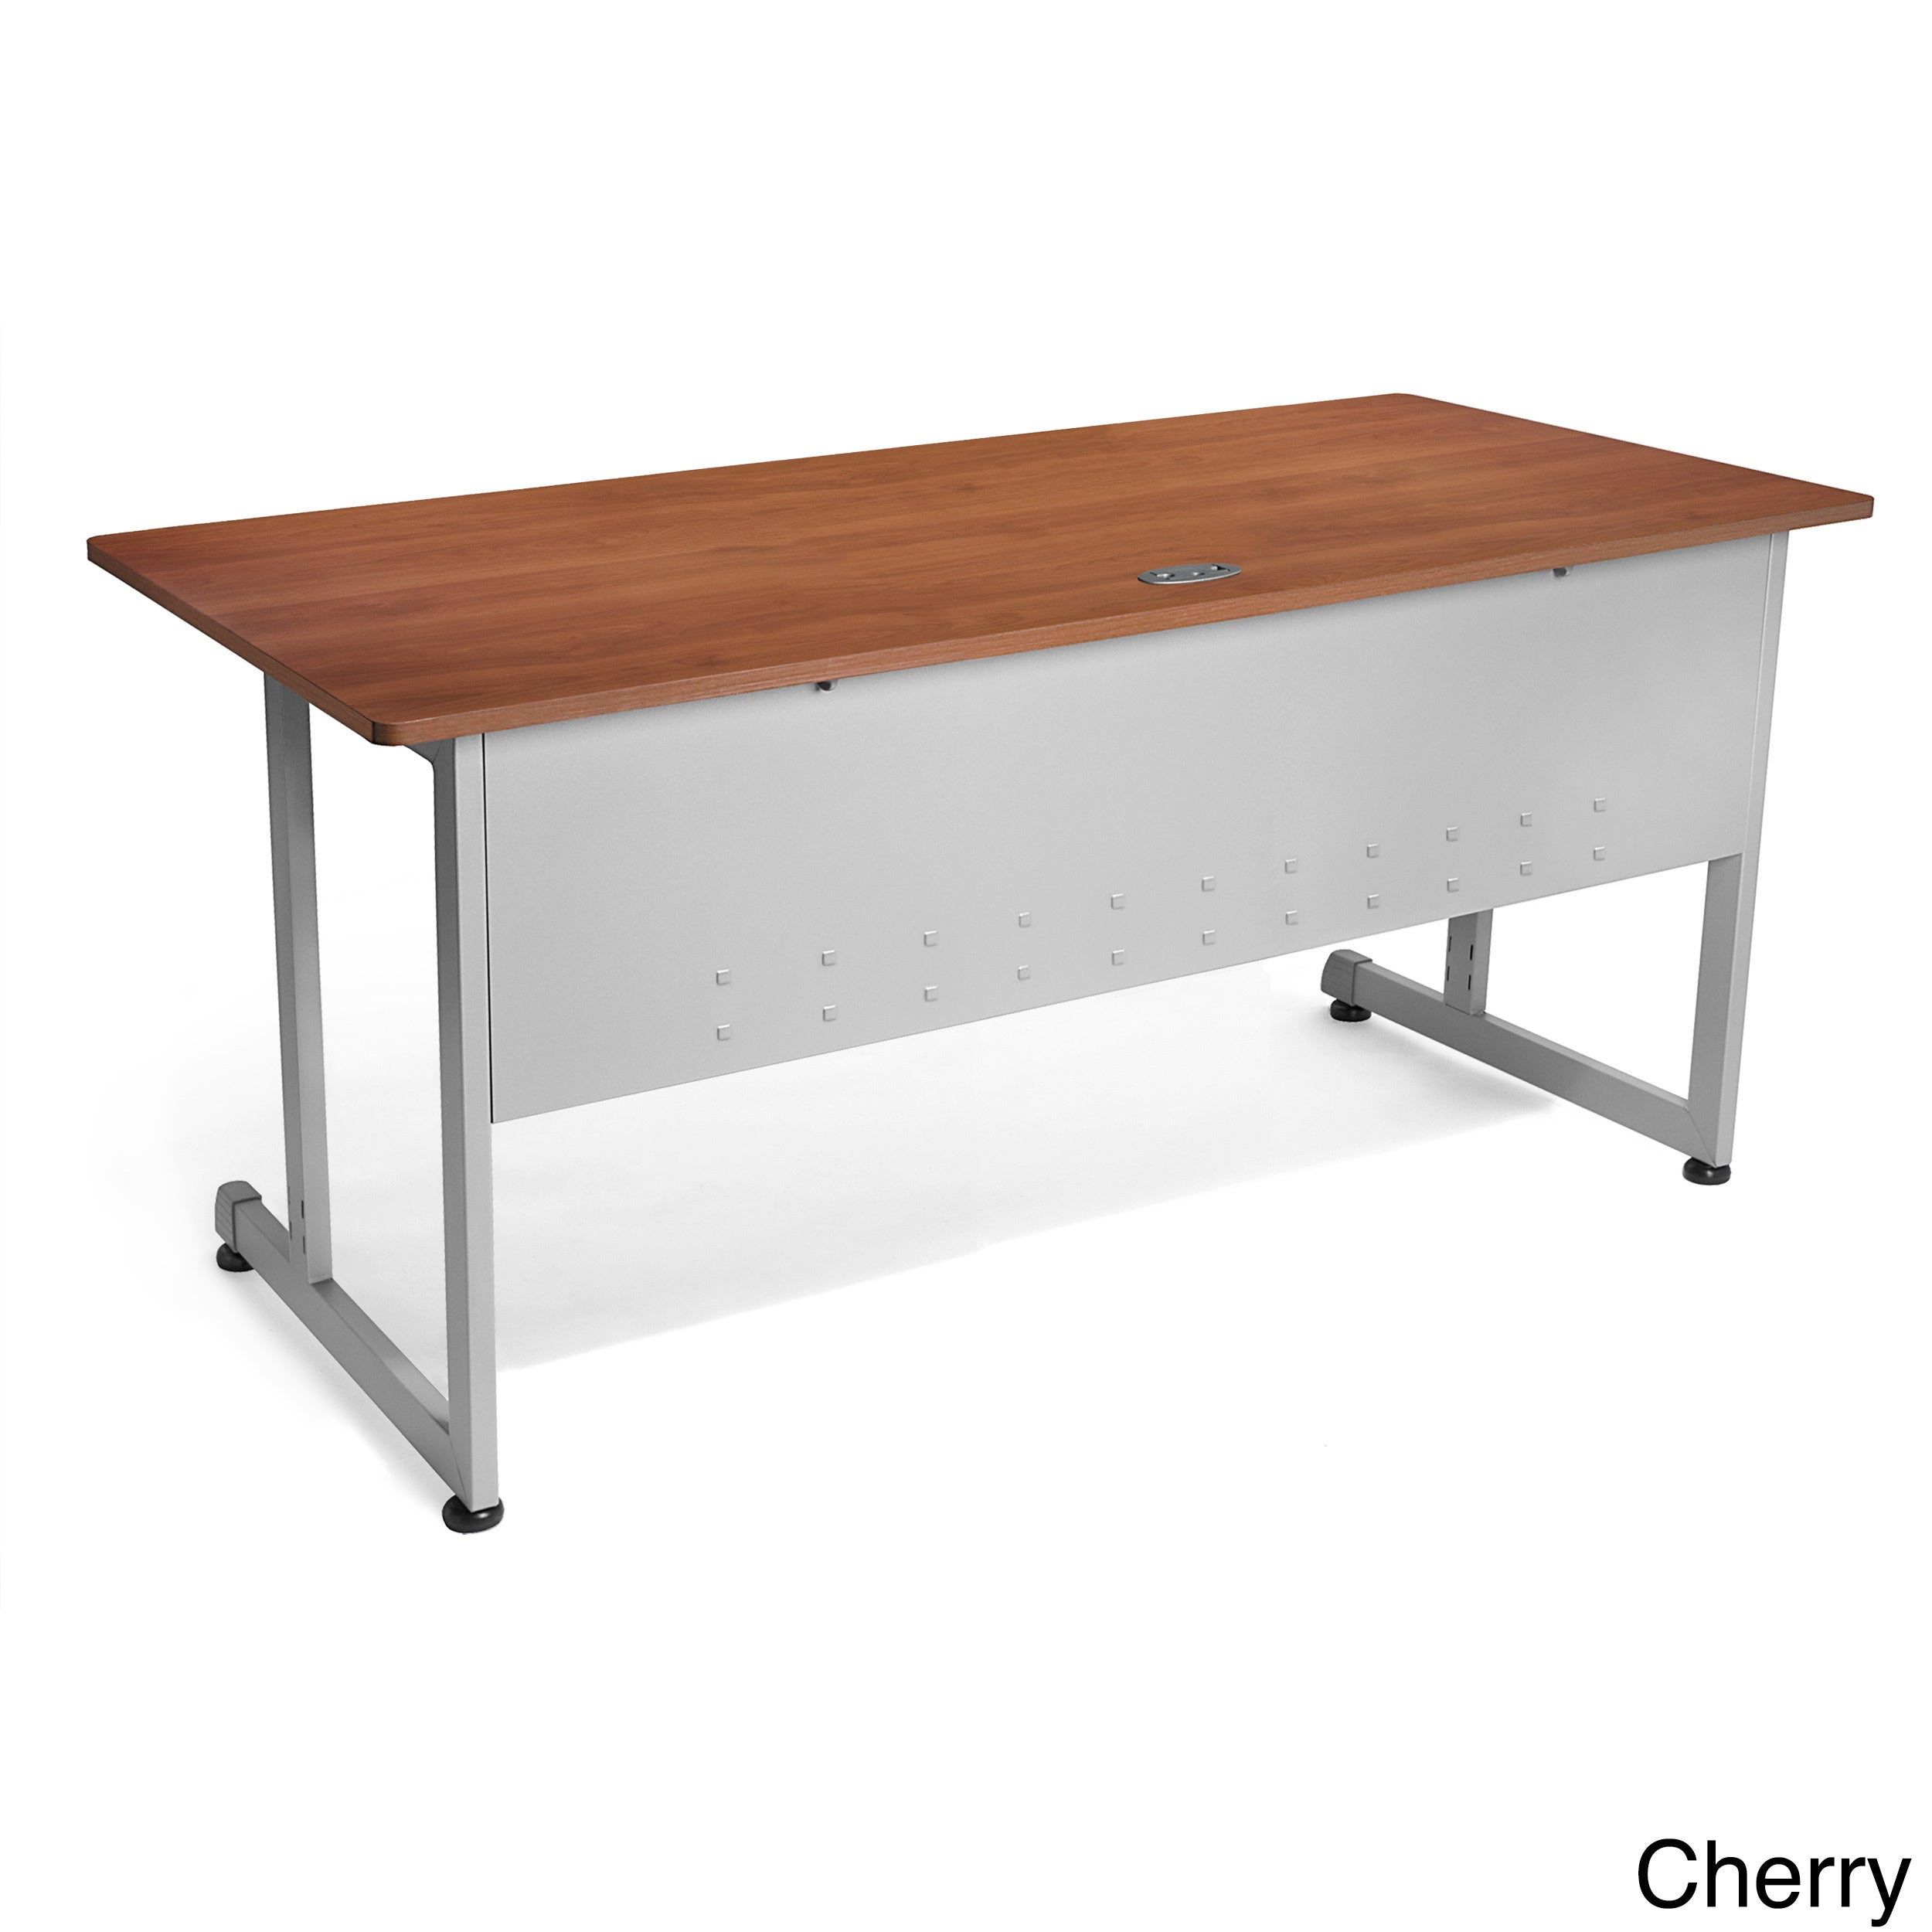 Shop scratch resistant modular steel 30 inch x 60 inch desk worktable 30 x 60 free shipping today overstock com 10702025